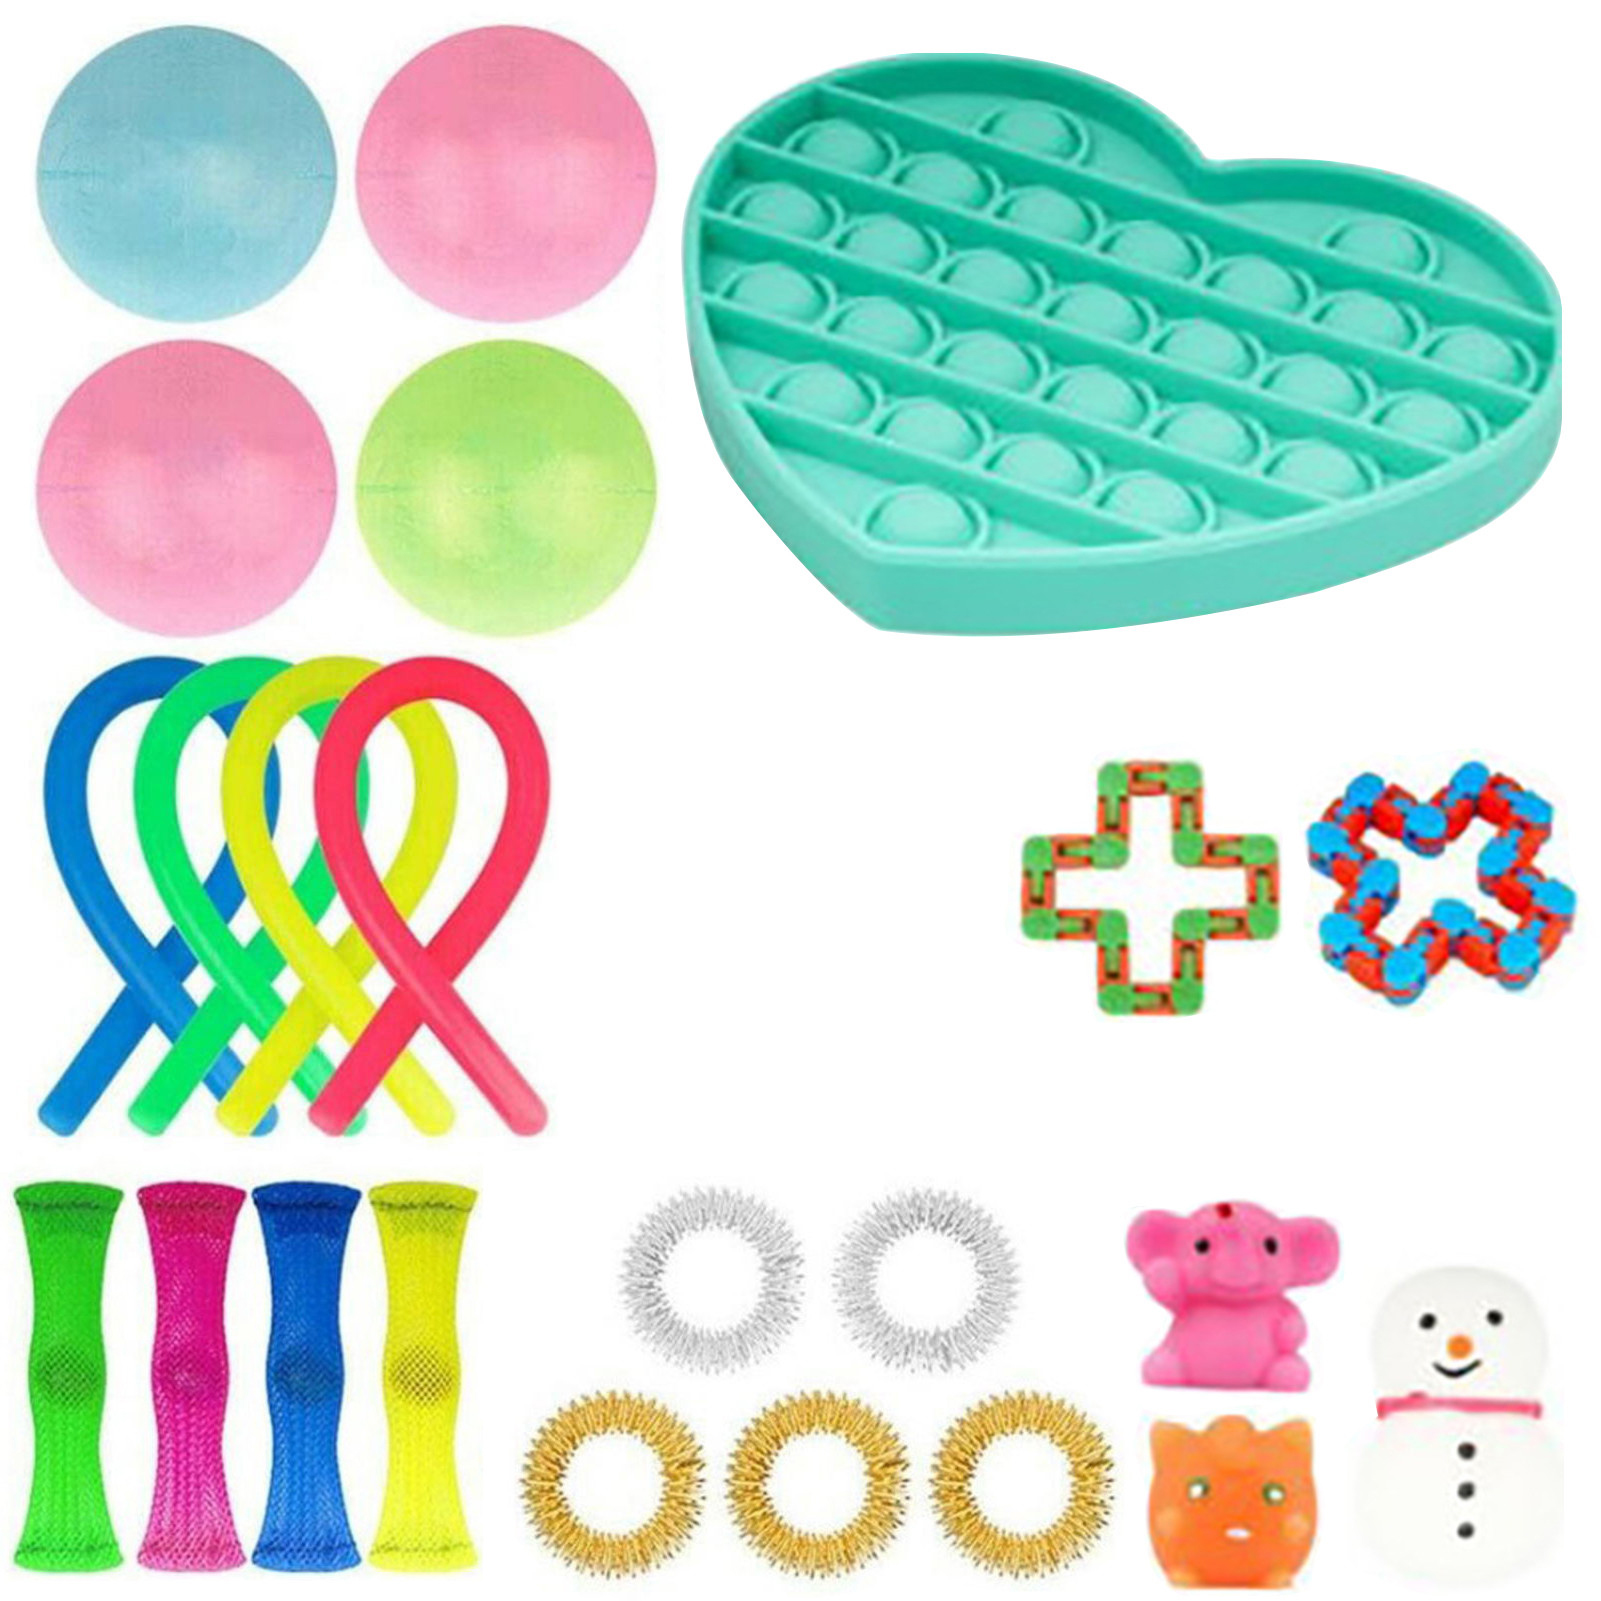 24 Pack Fidget Toys Set Anti Stress Autism Anxiety Relief Stress Squeeze Toys Fidget img2